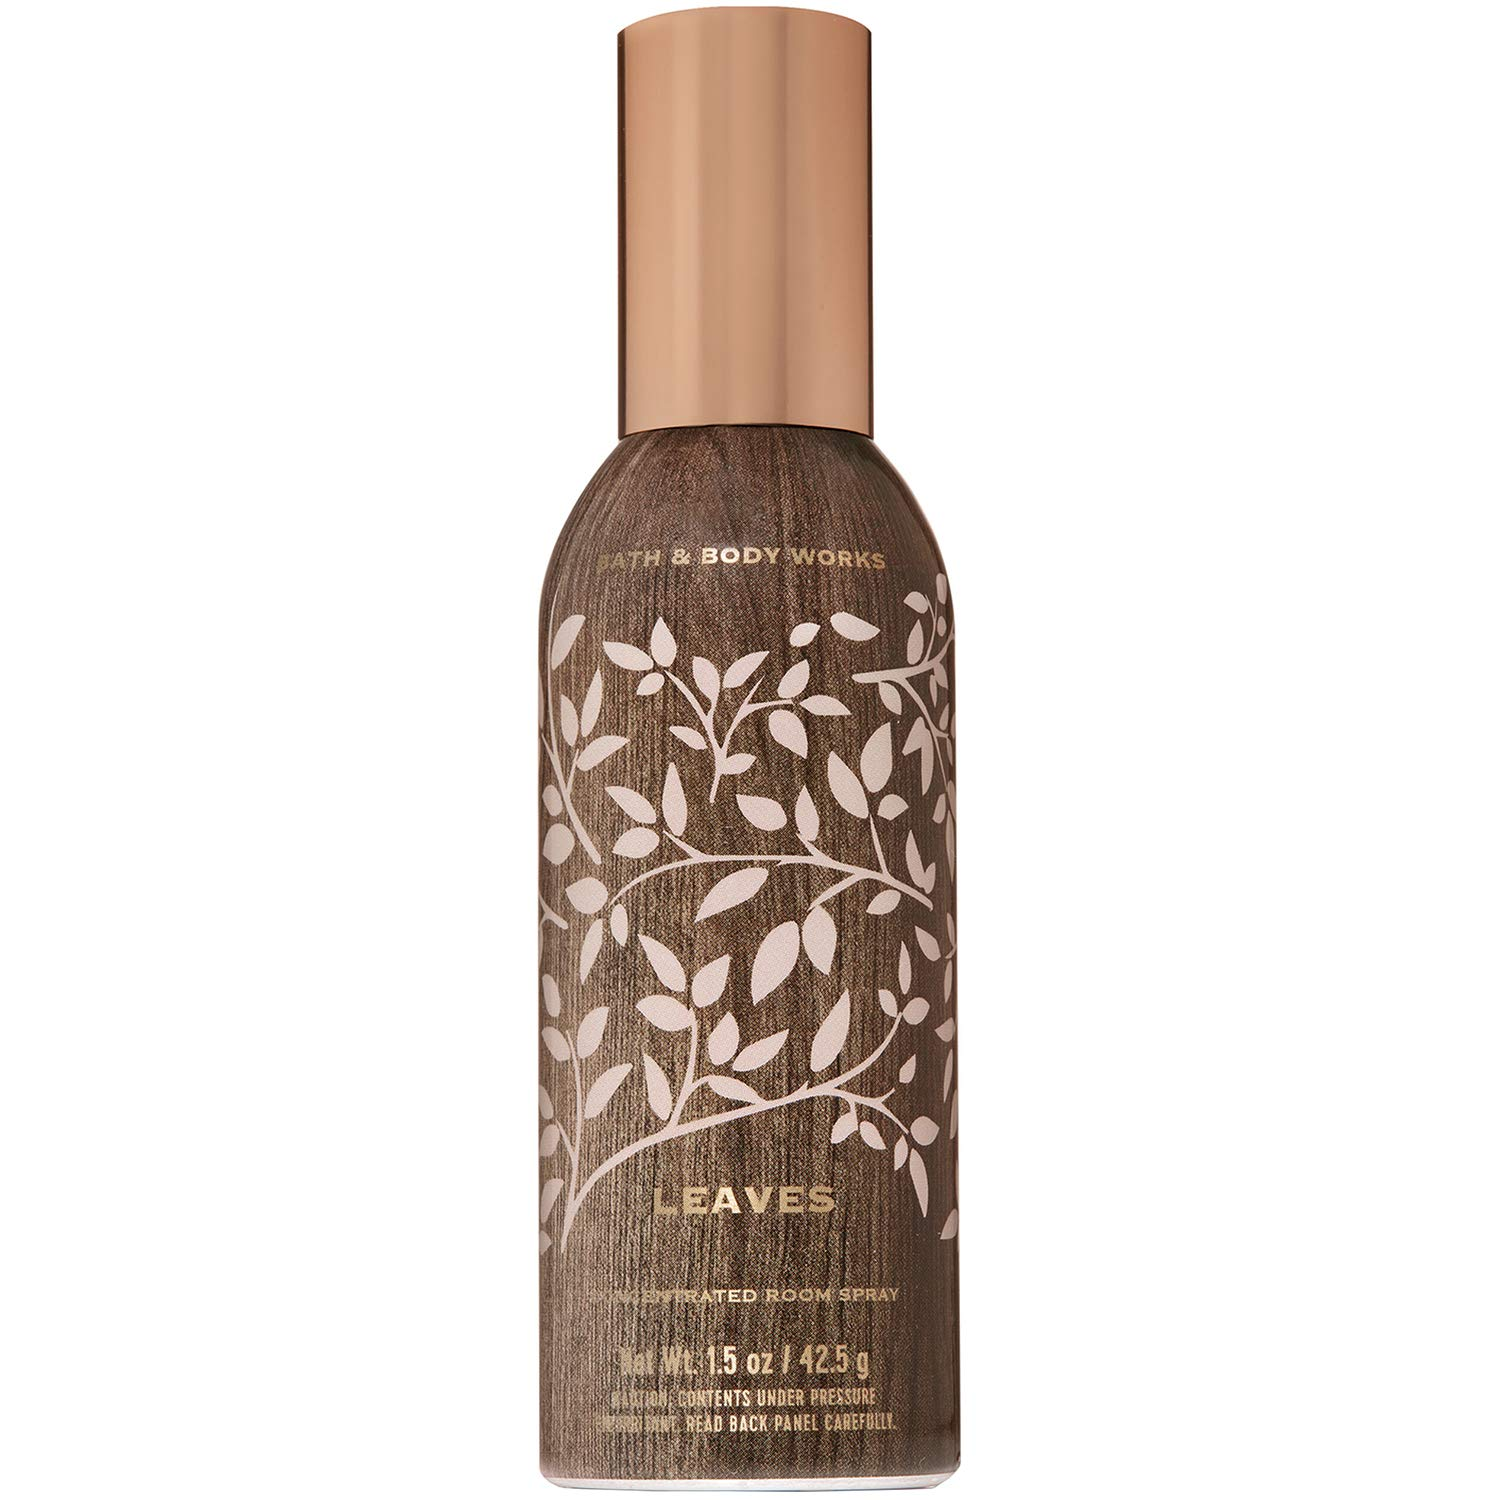 Bath and Body Works Leaves Concentrated Room Spray 1.5 Ounce (2019 Edition)